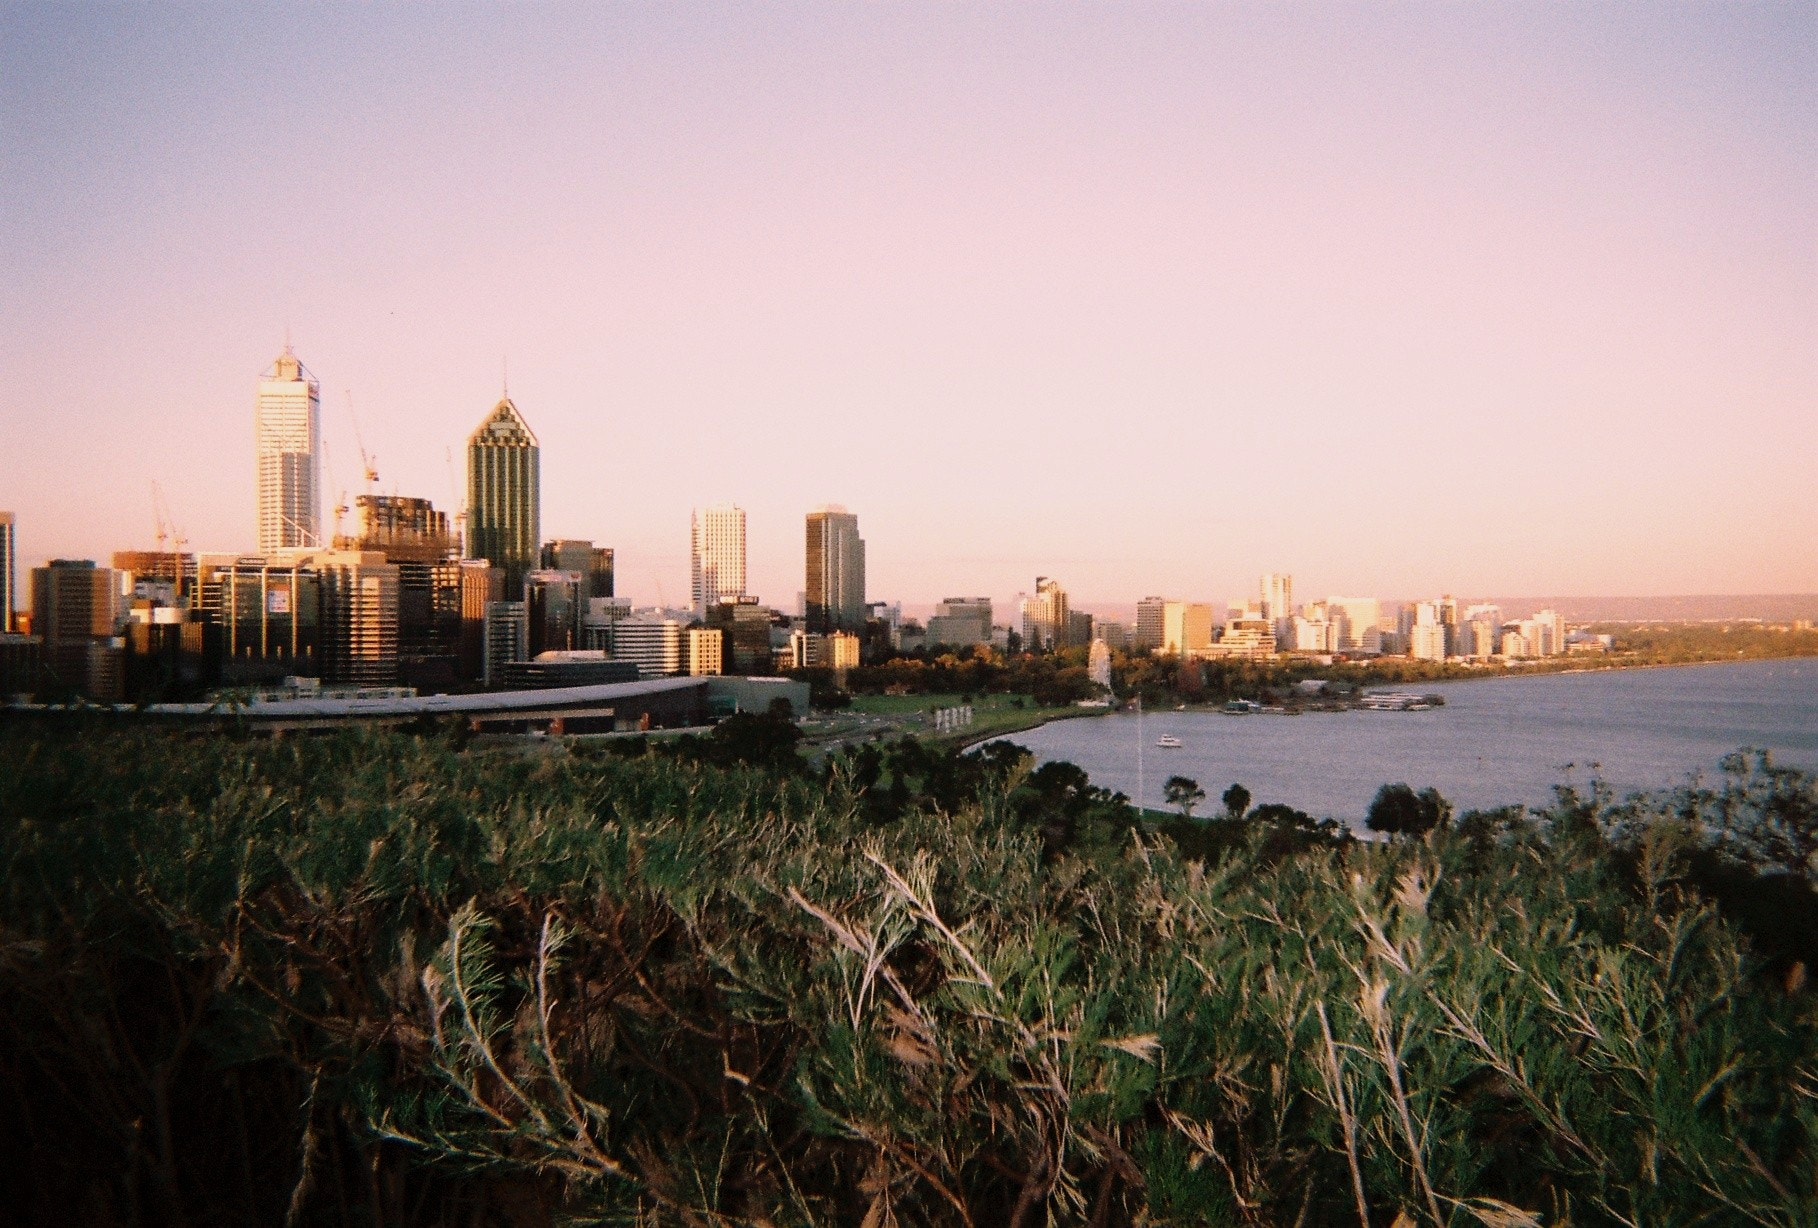 Photograph Perth, Western Australia by Alice Mansell on 500px